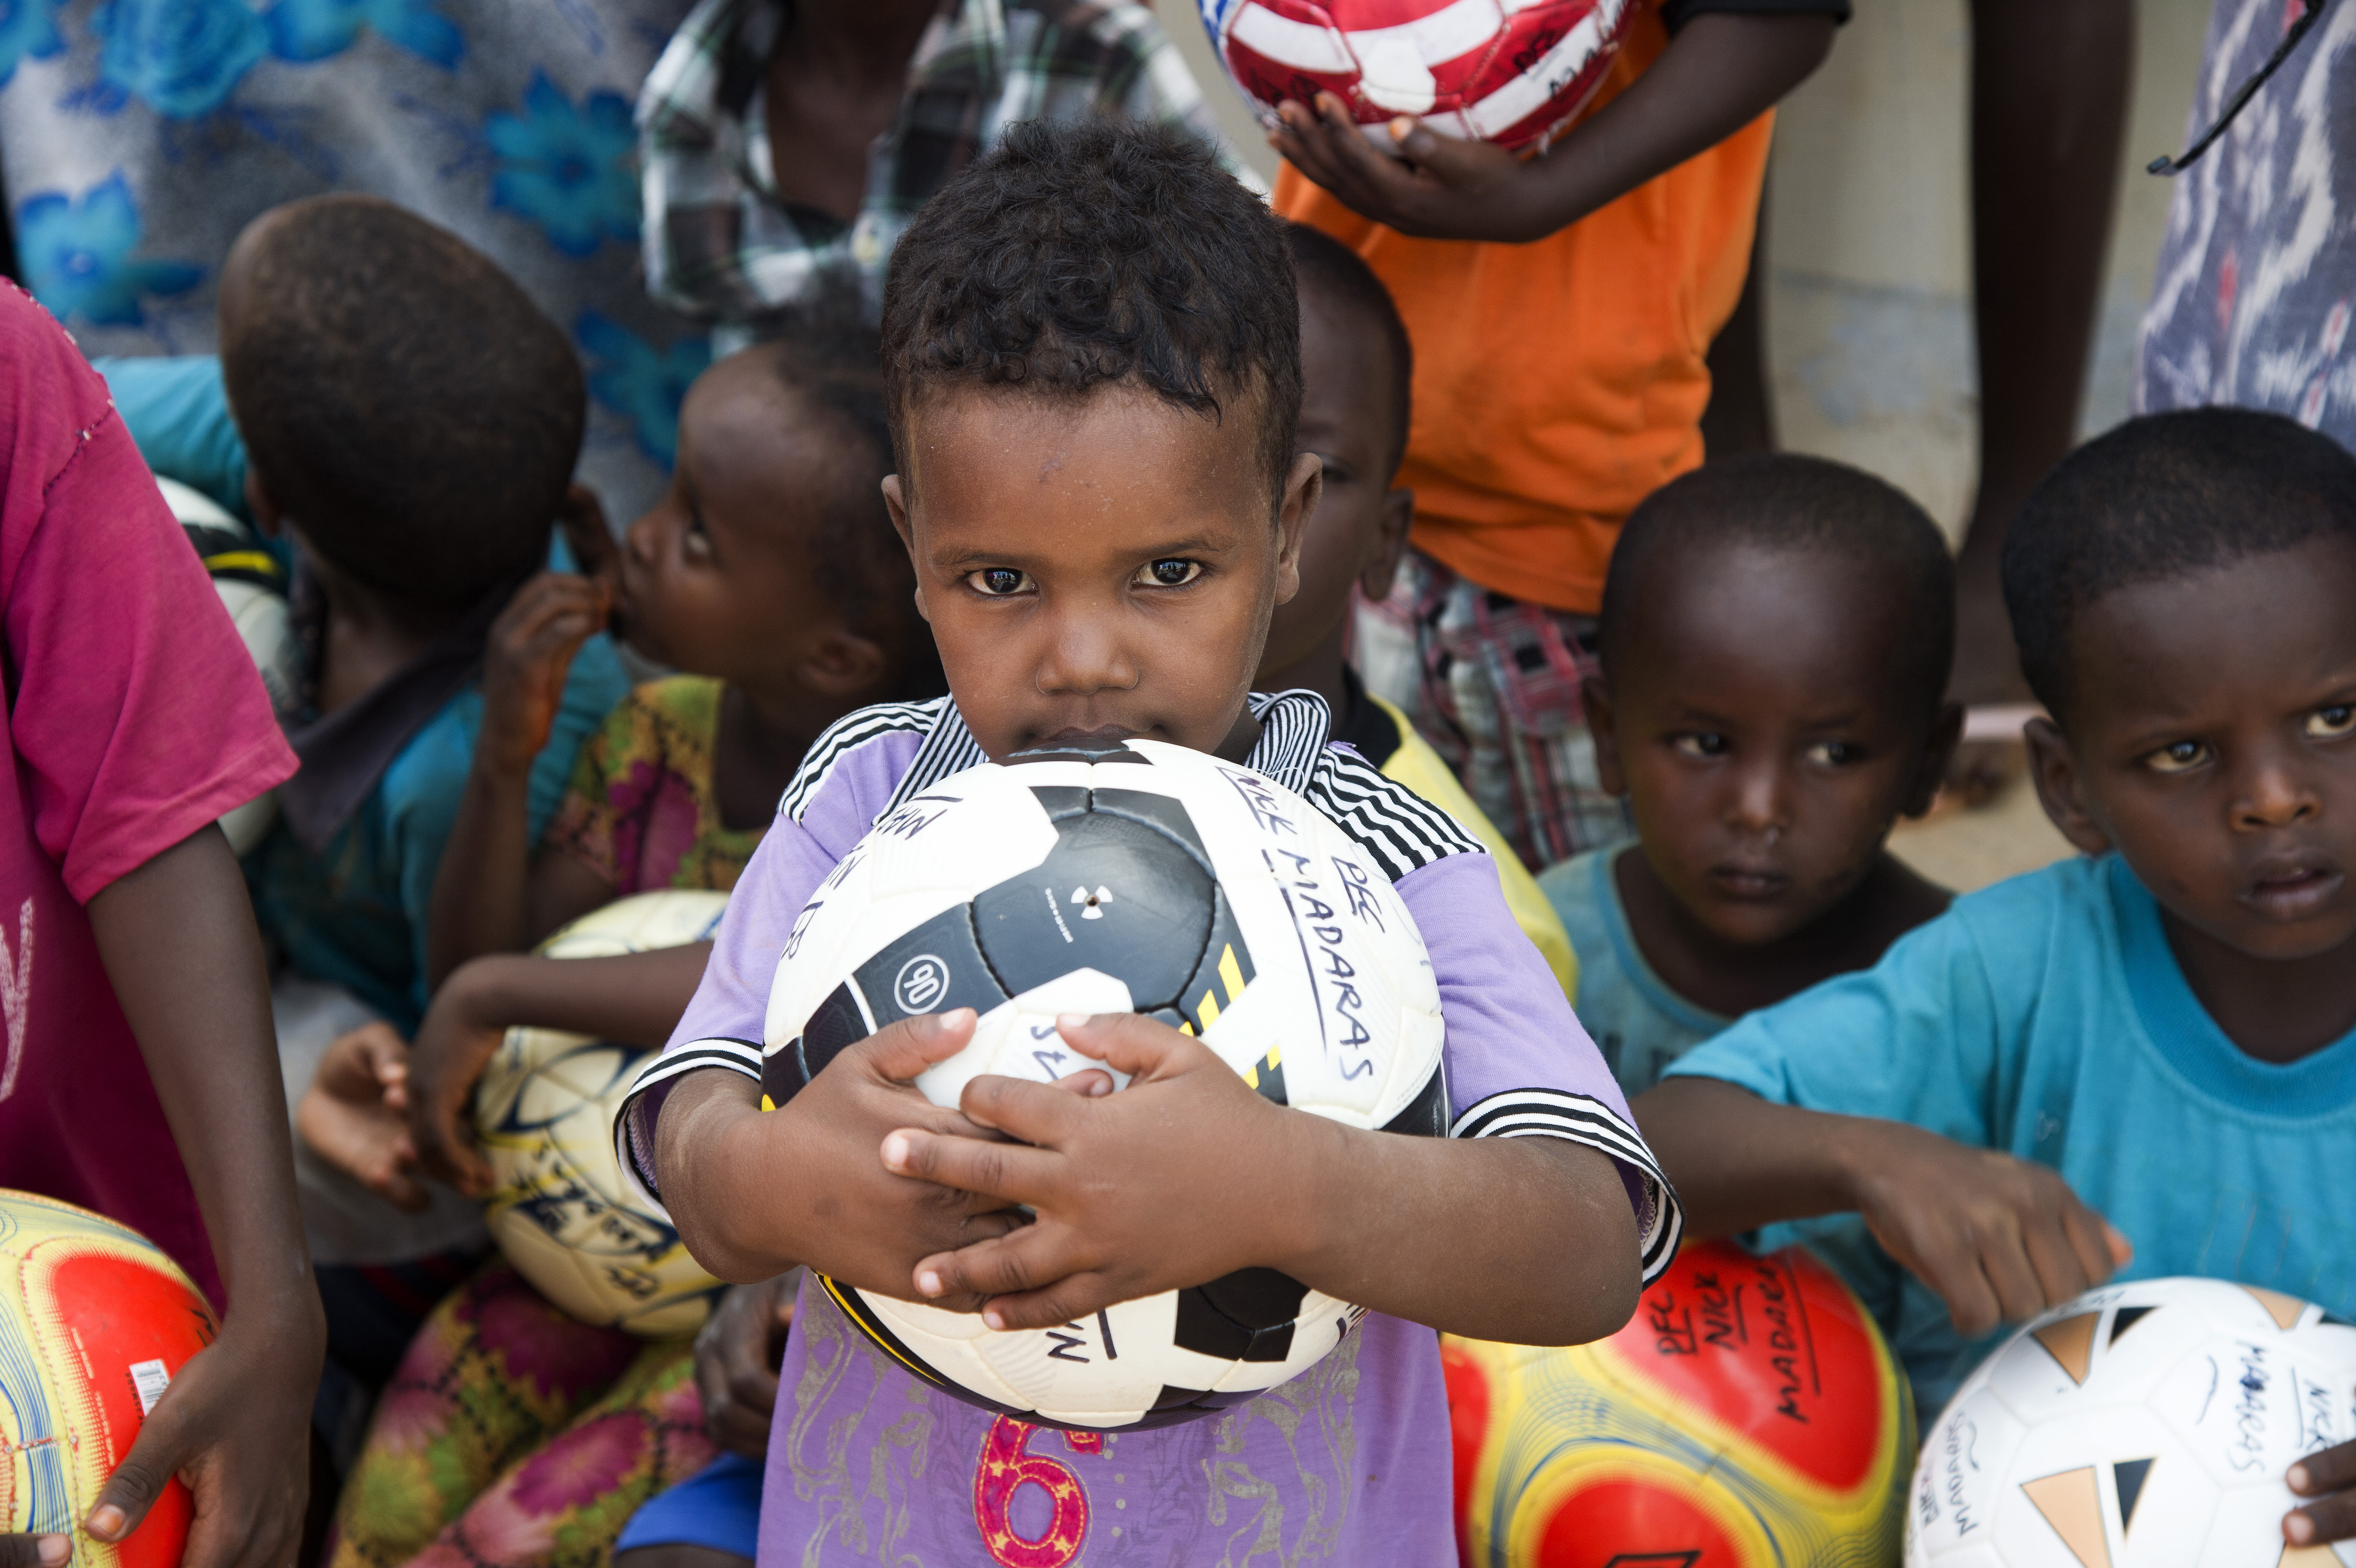 A child holds a soccer ball given to him by volunteers from Combined Joint Task Force-Horn of Africa during a visit by members of the U.S. Army's 404th Civil Affairs Battalion (Airborne), to Chebelley Village, Djibouti, May 21, 2015. Chebelley village is a community near Camp Lemonnier that the 404th CA BN visits monthly for community events and projects. (U.S. Air Force photo by Staff Sgt. Nathan Maysonet)